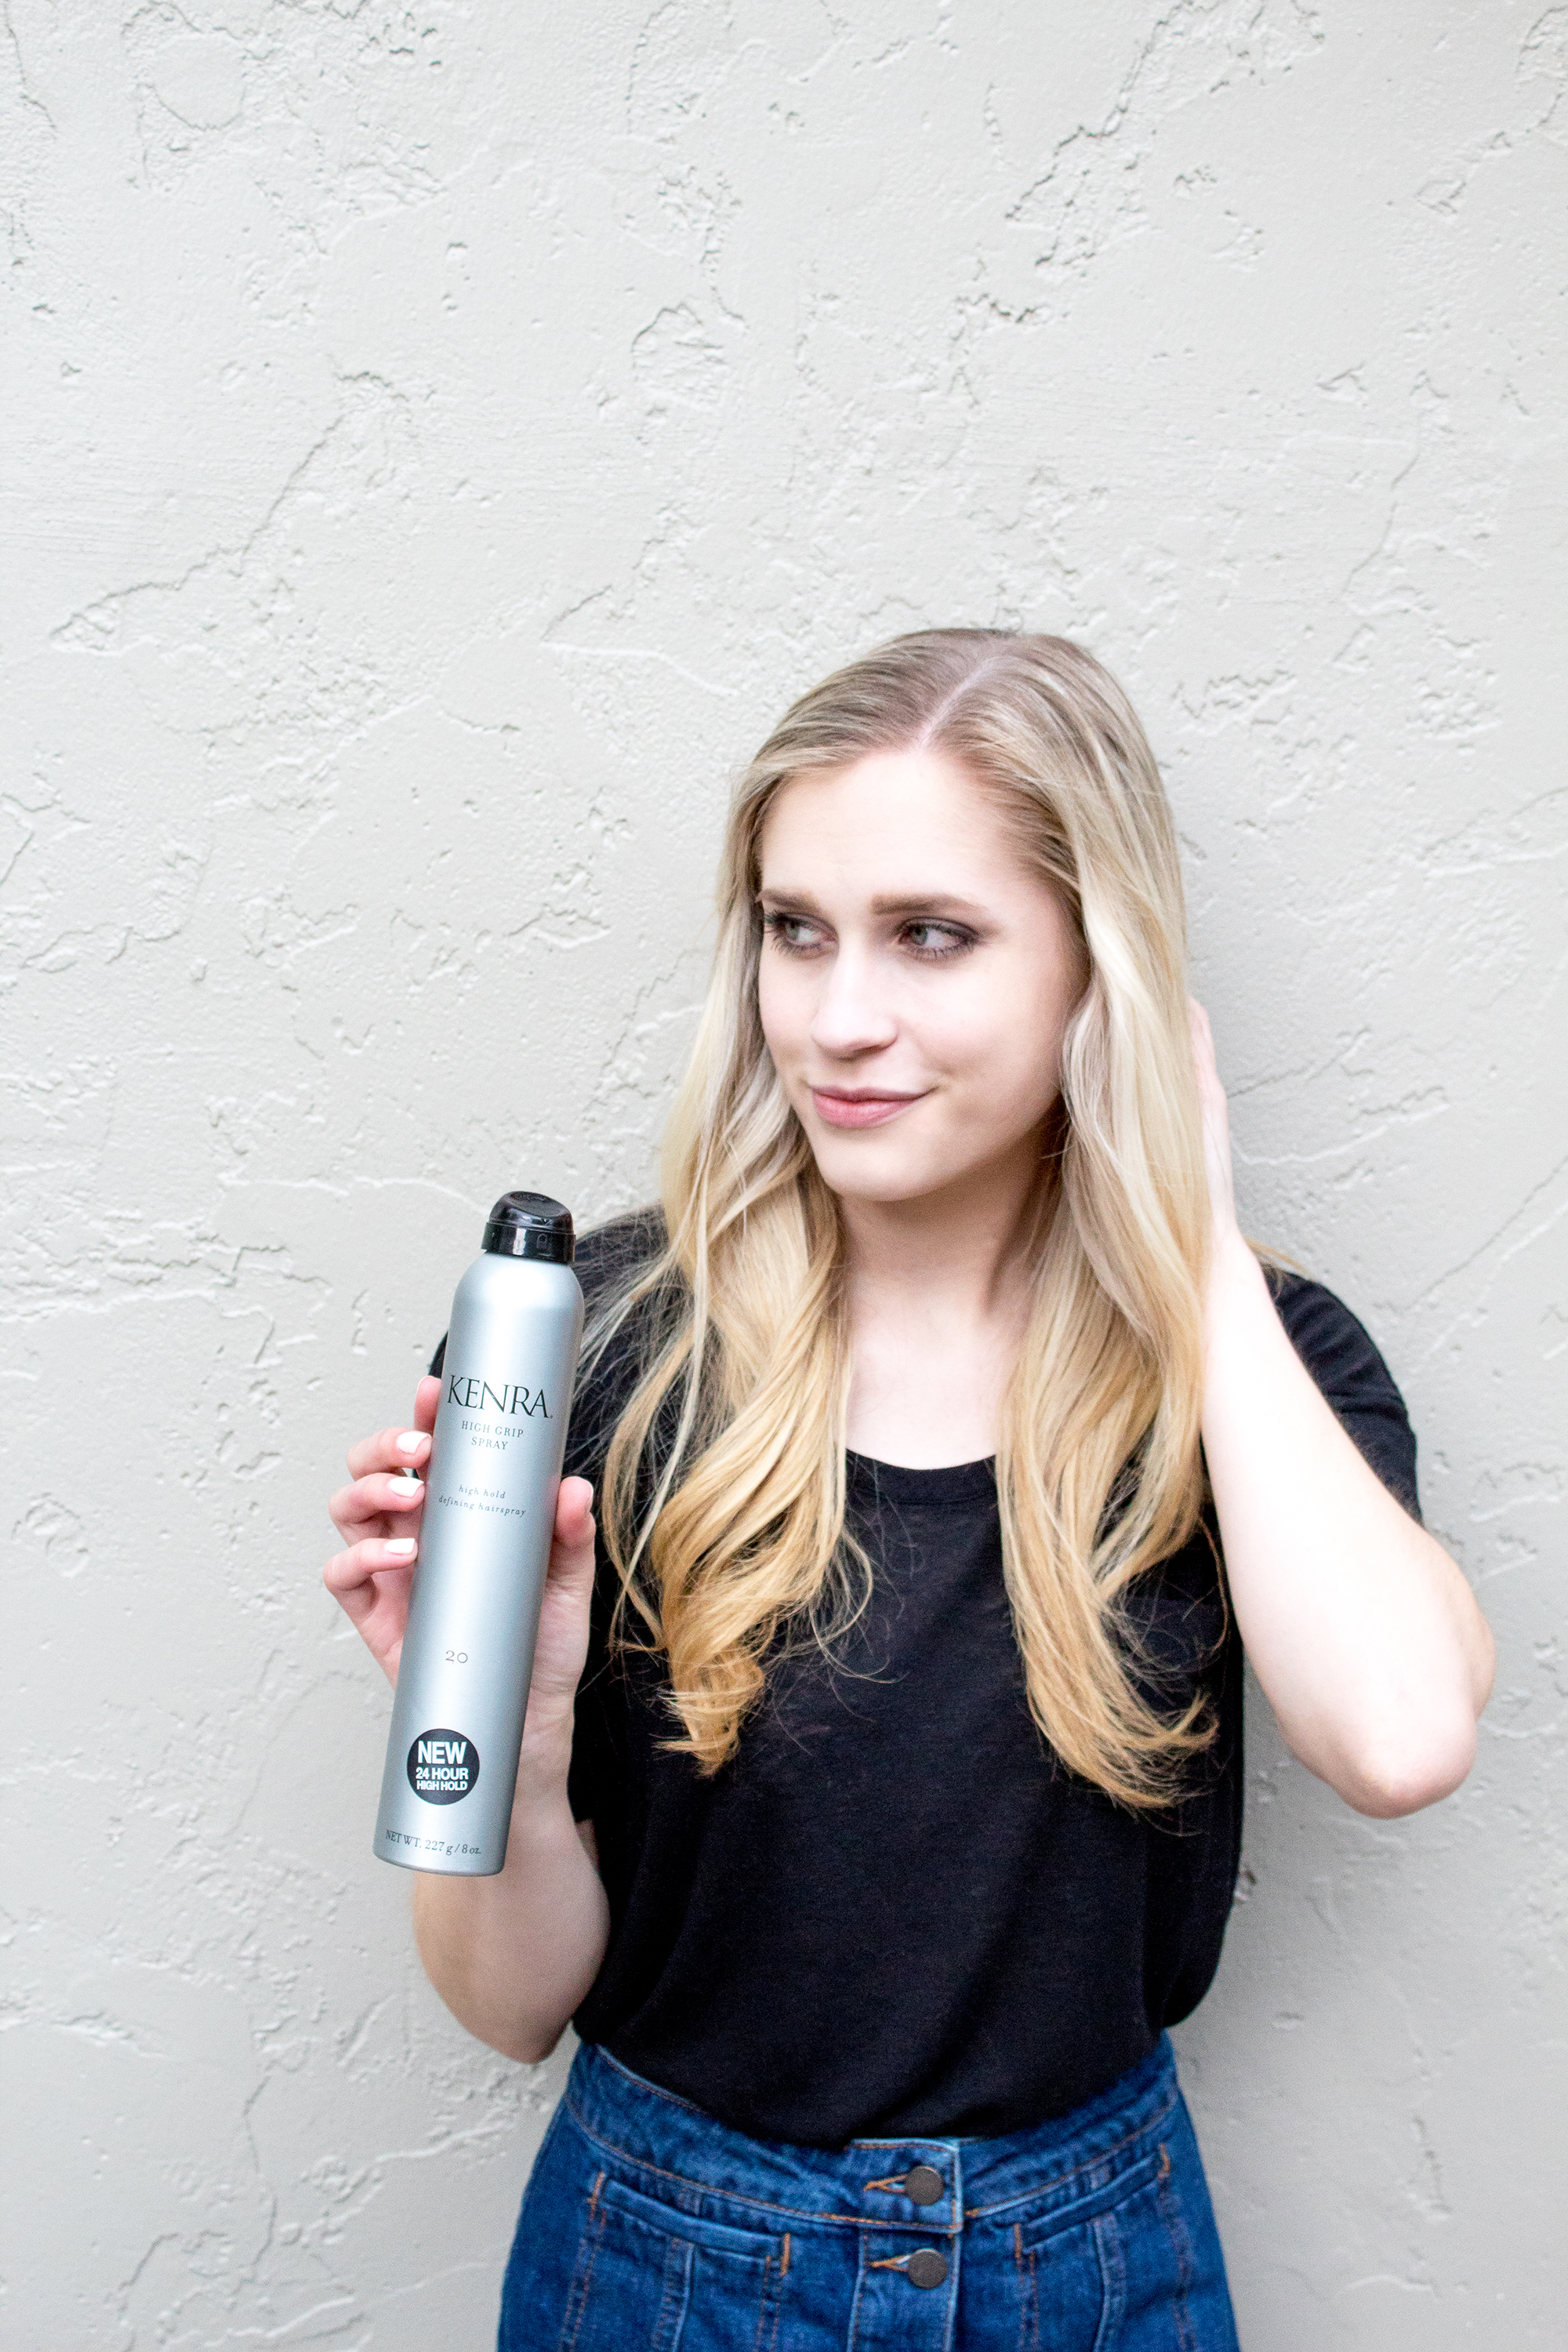 styelled-blog-fashion-lifestyle-beauty-style-blogger-elle-elisabeth-kenra-hair-products-hairspray-blonde-haircare-curl-03